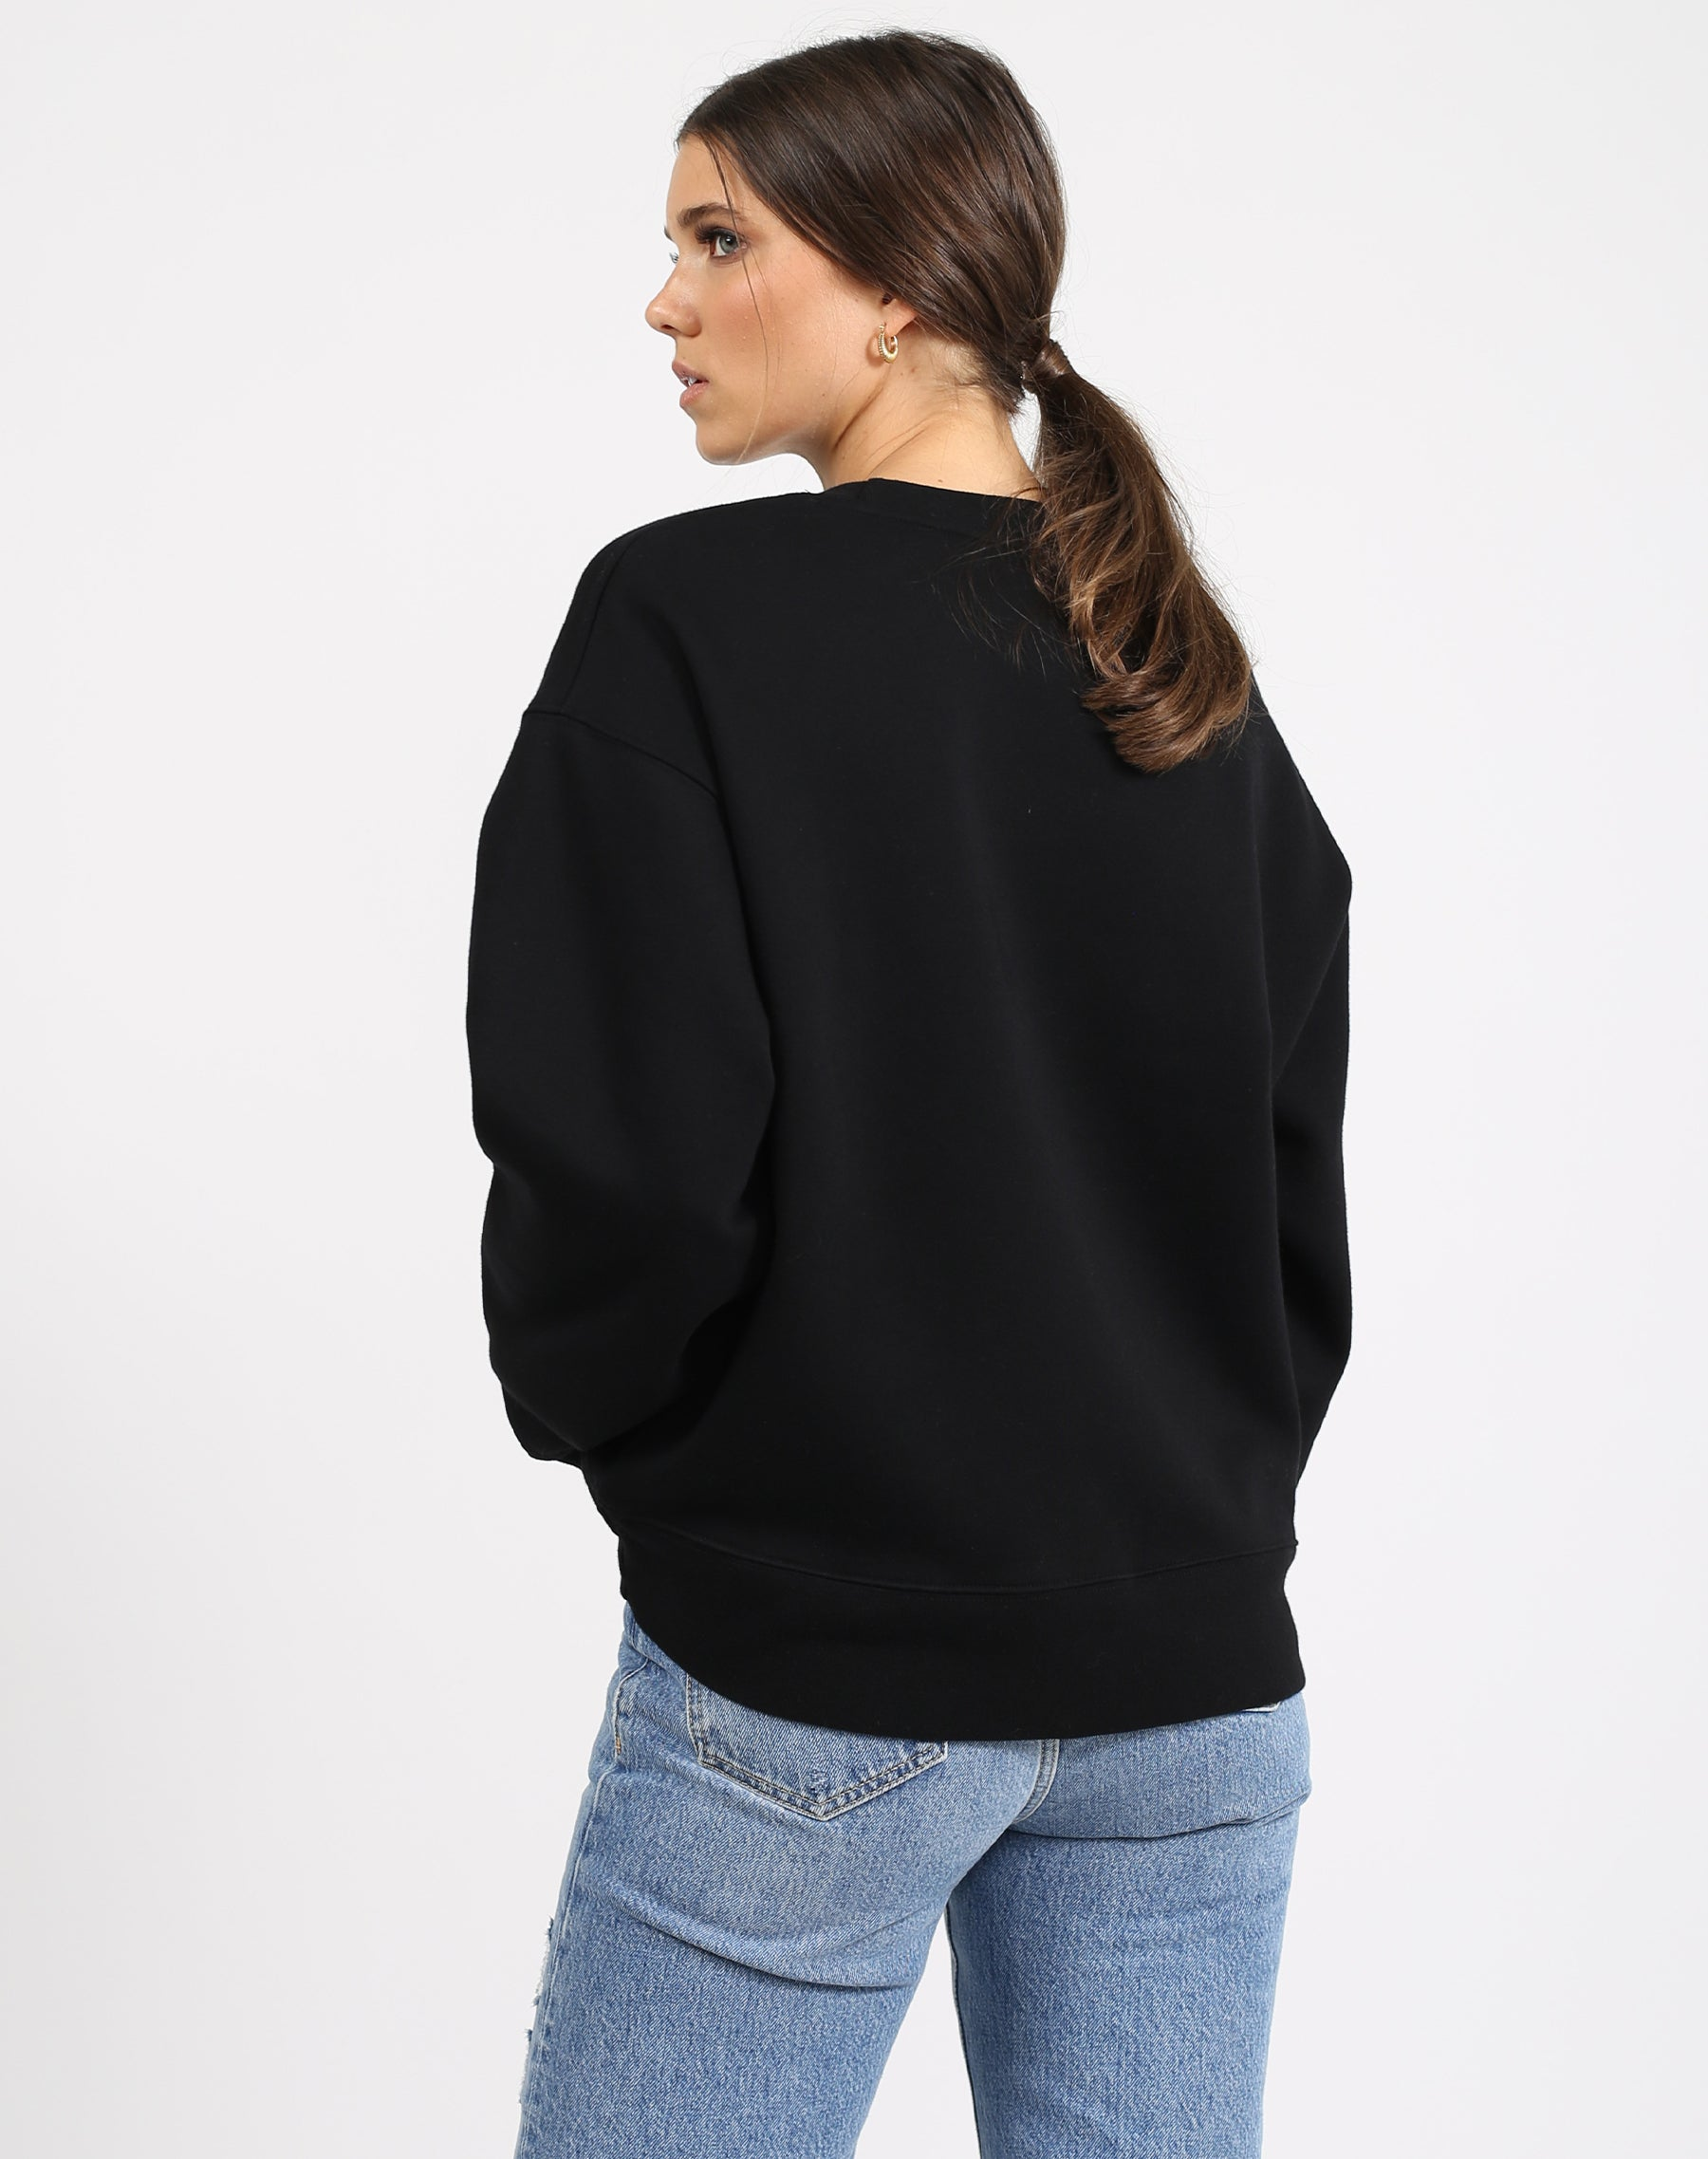 This is an image the back of a model wearing the Brunette Zebra Varsity Step Sister Crew Neck Sweatshirt in Black by Brunette the Label.